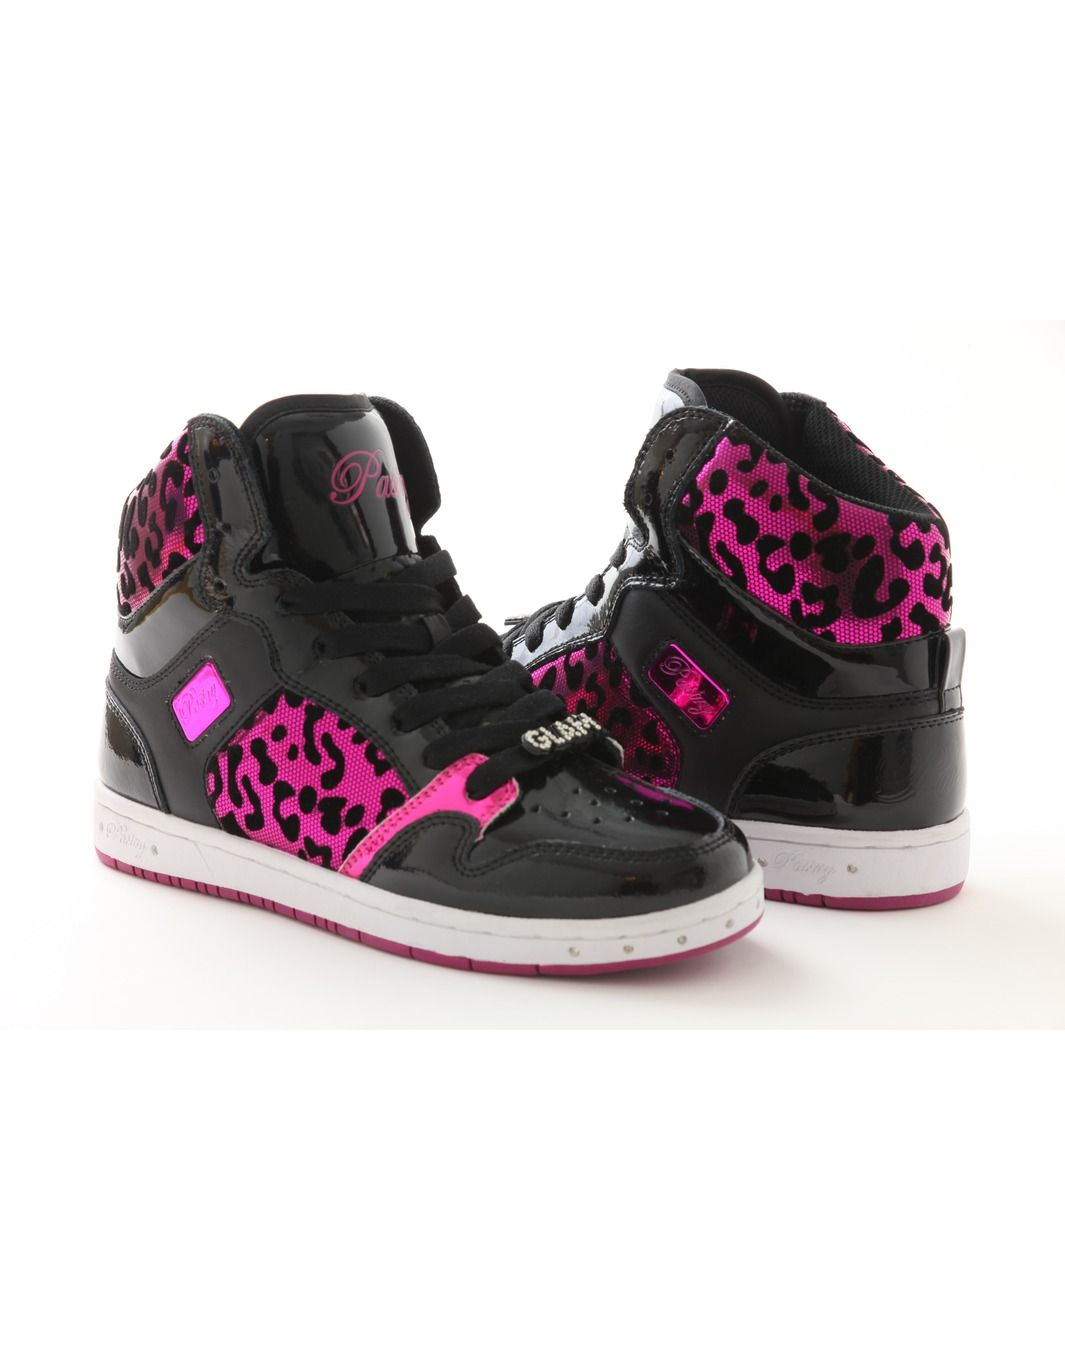 Footwear Glam Pie Foil Cheetah Pink Official Pastry Shoes By Vanessa And Angela